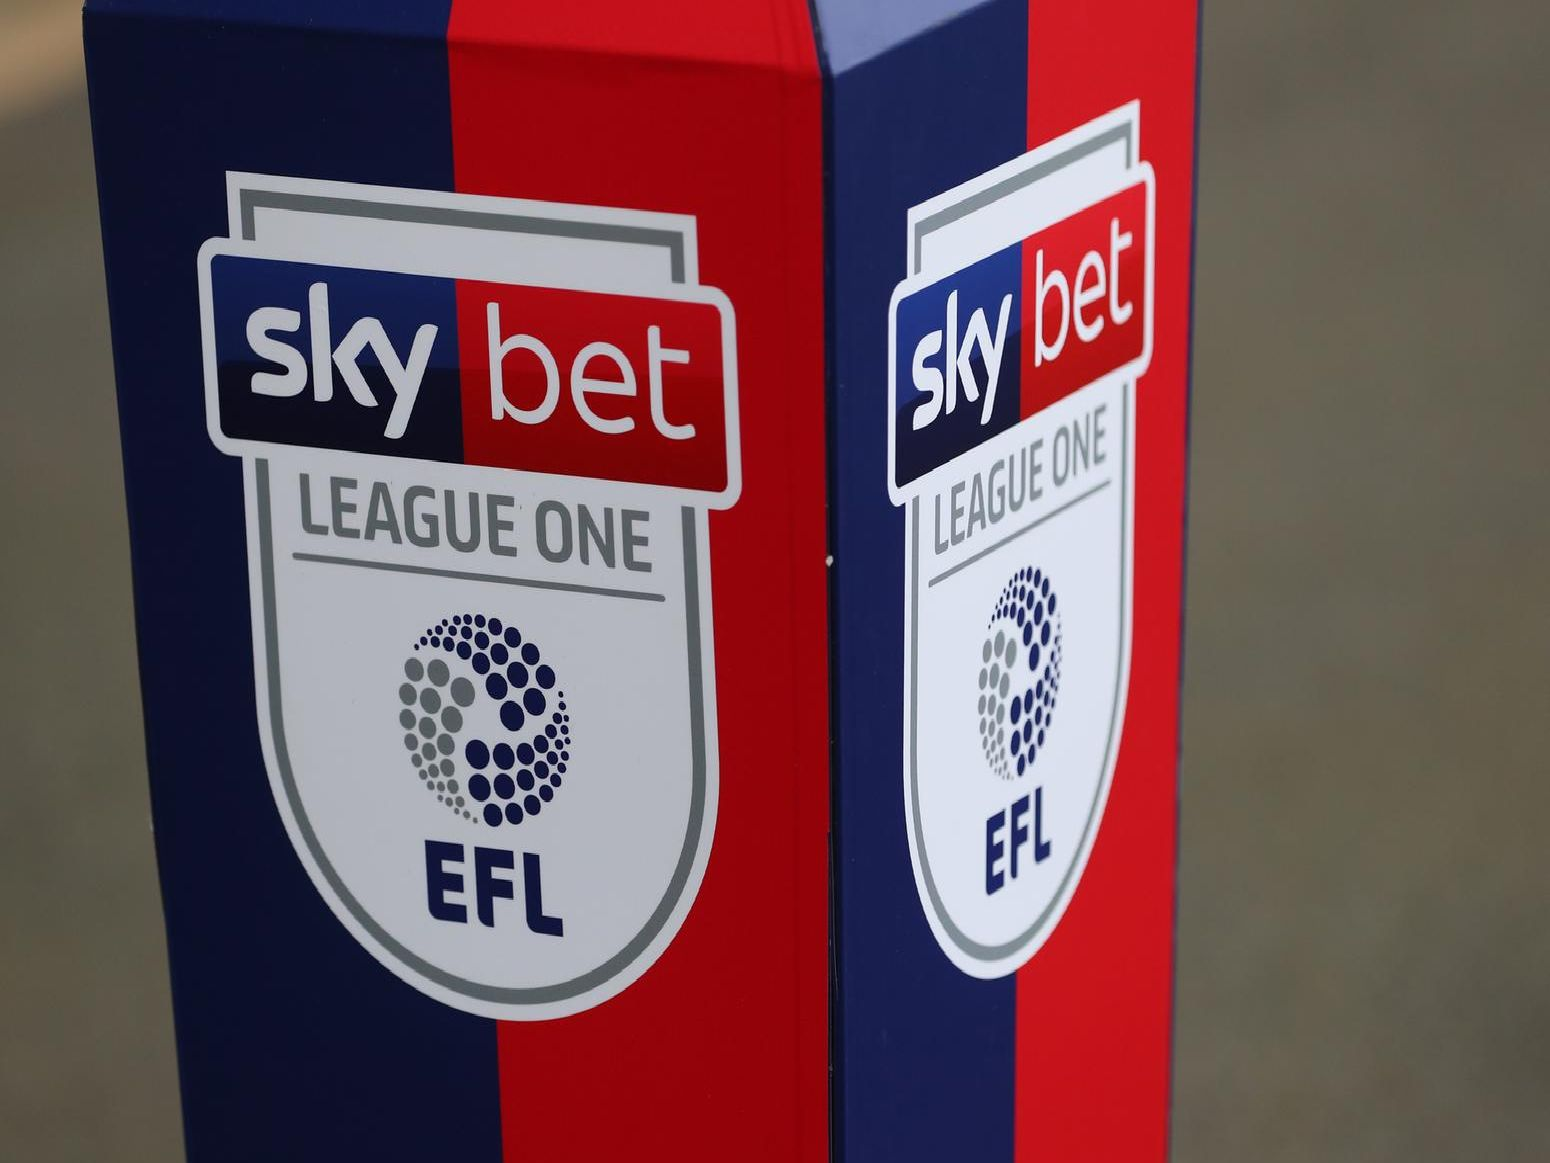 League One promotion race: How the bookmakers rate Luton Town's Championship hopes